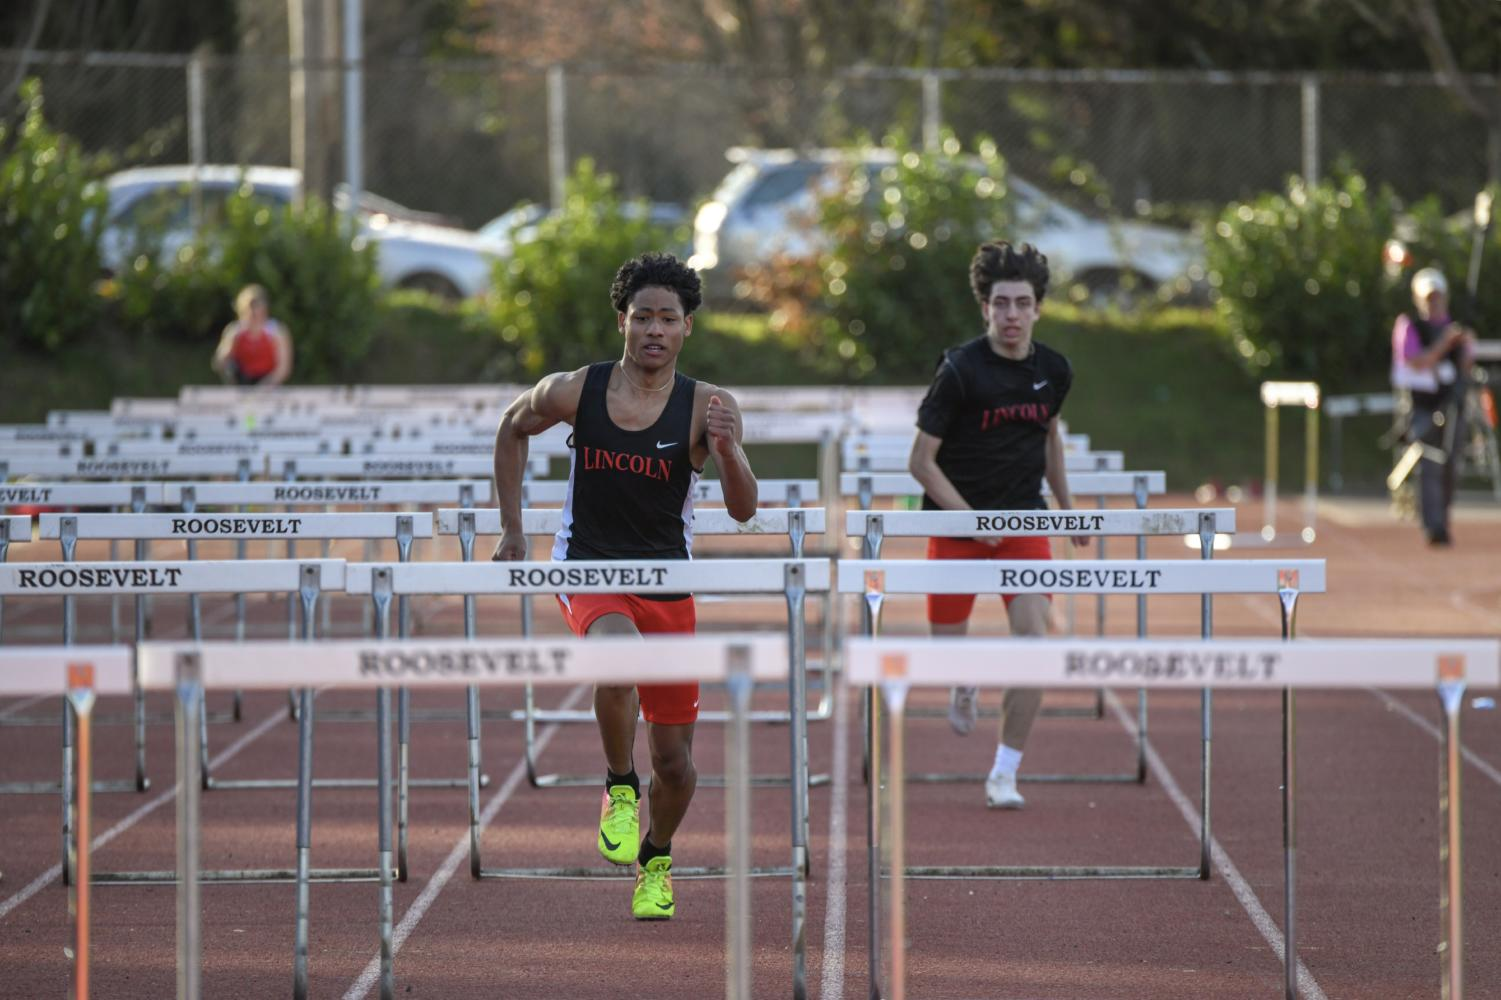 Freshman Justius Lowe leads the charge against junior Joey Abrams in a 110-meter high-hurdles race at Roosevelt on Mar 20.